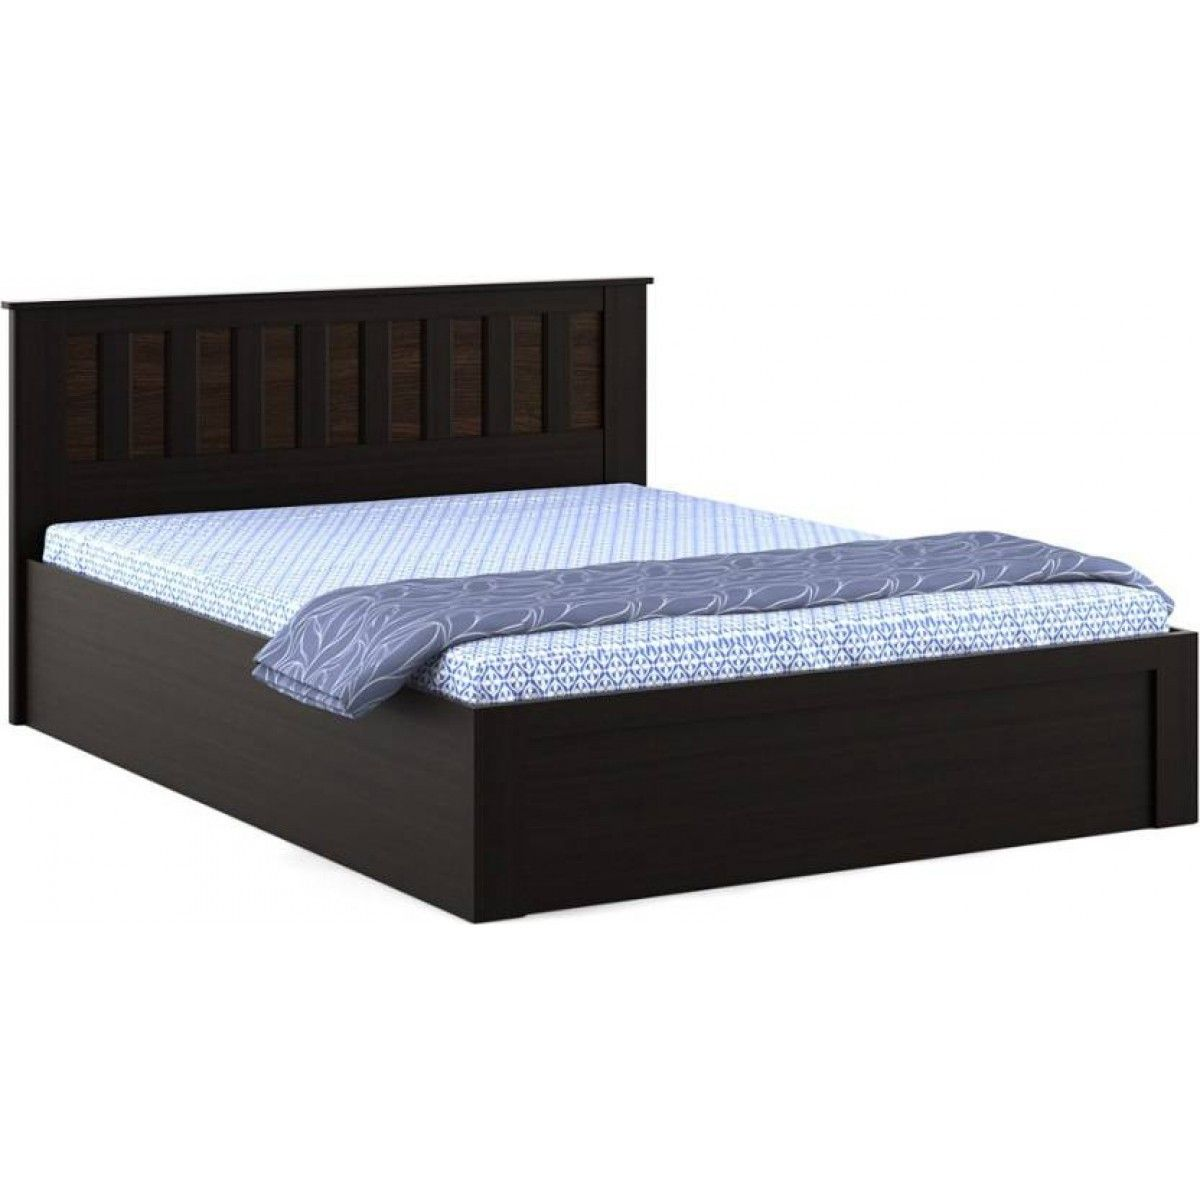 This Is An Another Masterpiece Of Beds With Storage Pure